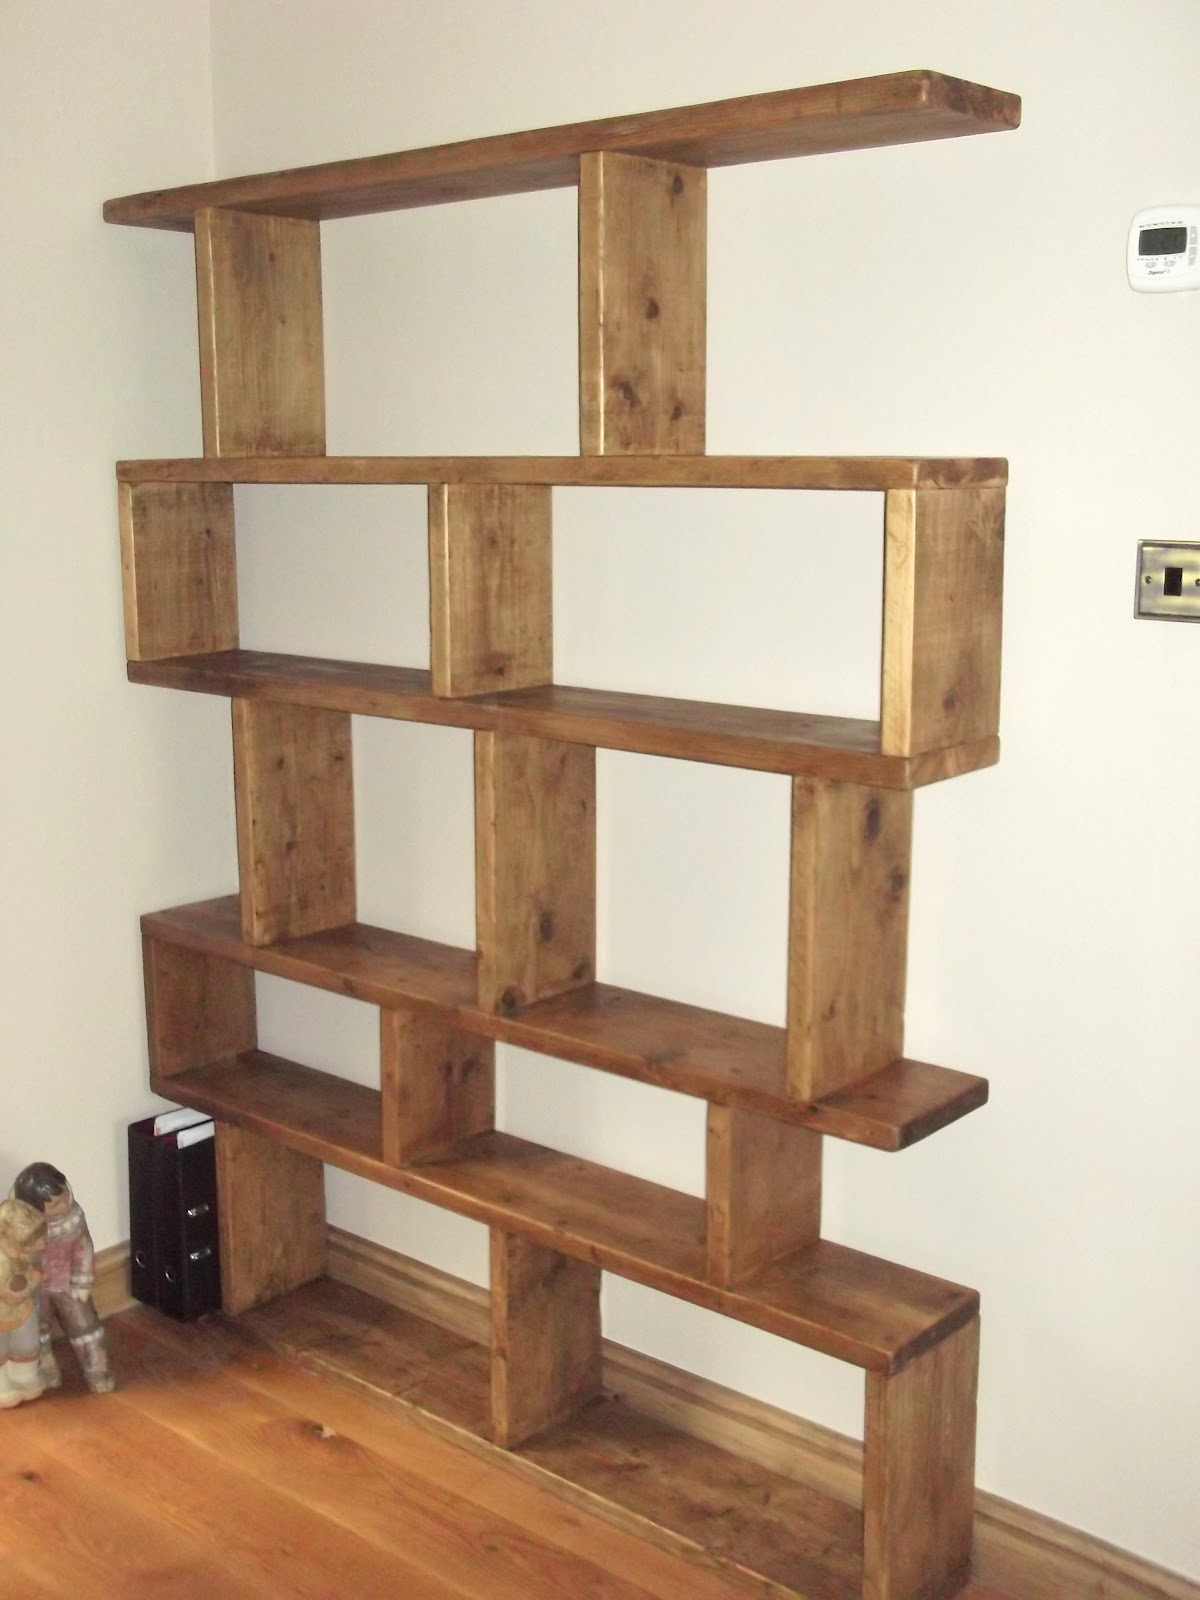 Free Standing Wooden Shelf Plans Search Results Diy A